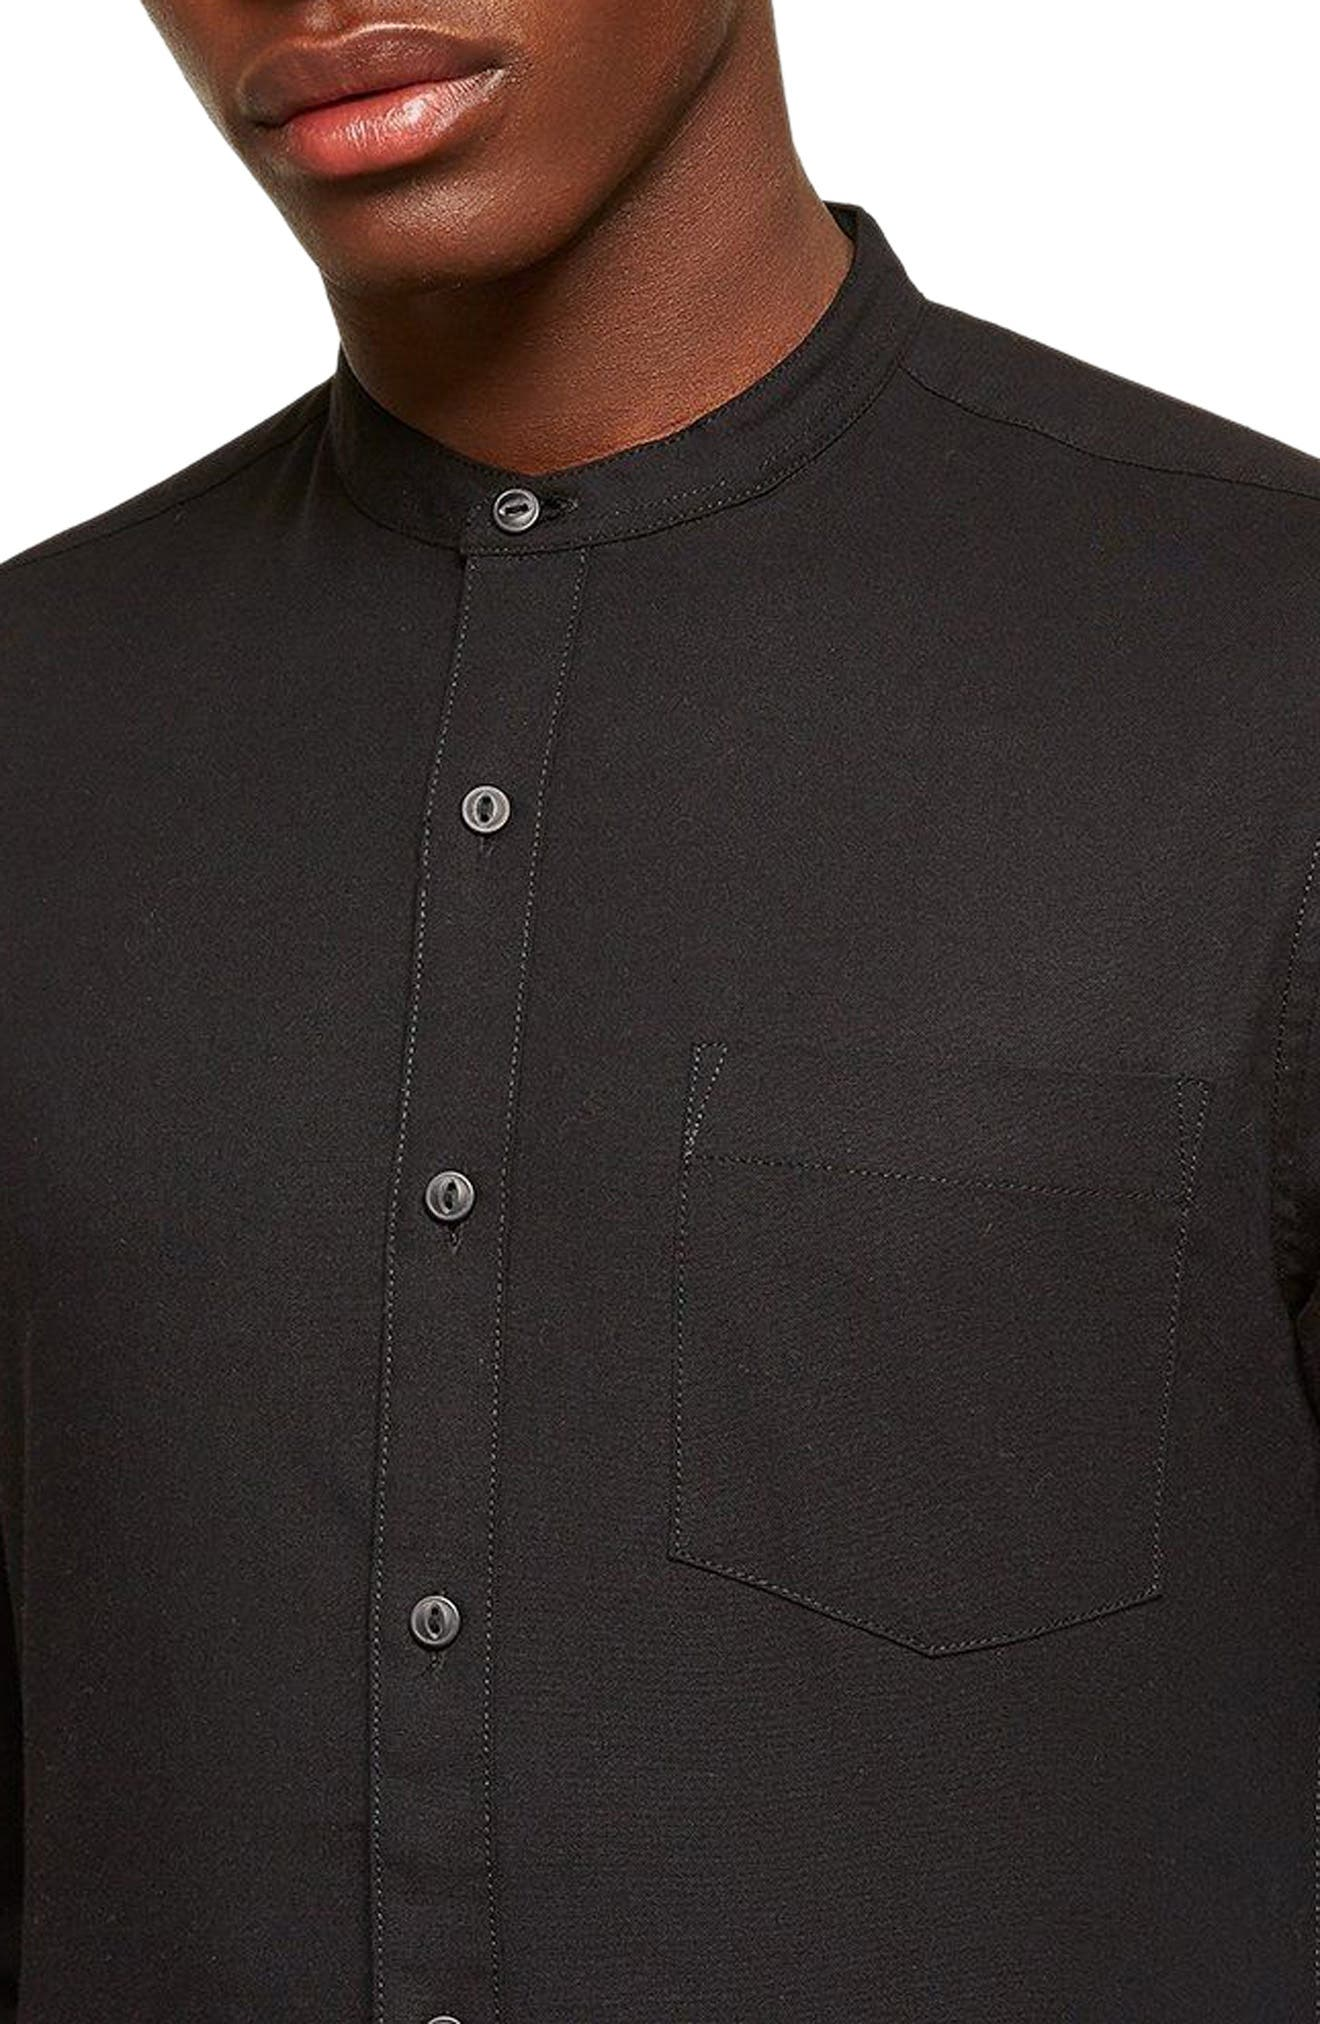 Muscle Fit Stretch Oxford Band Collar Shirt,                             Alternate thumbnail 2, color,                             Black